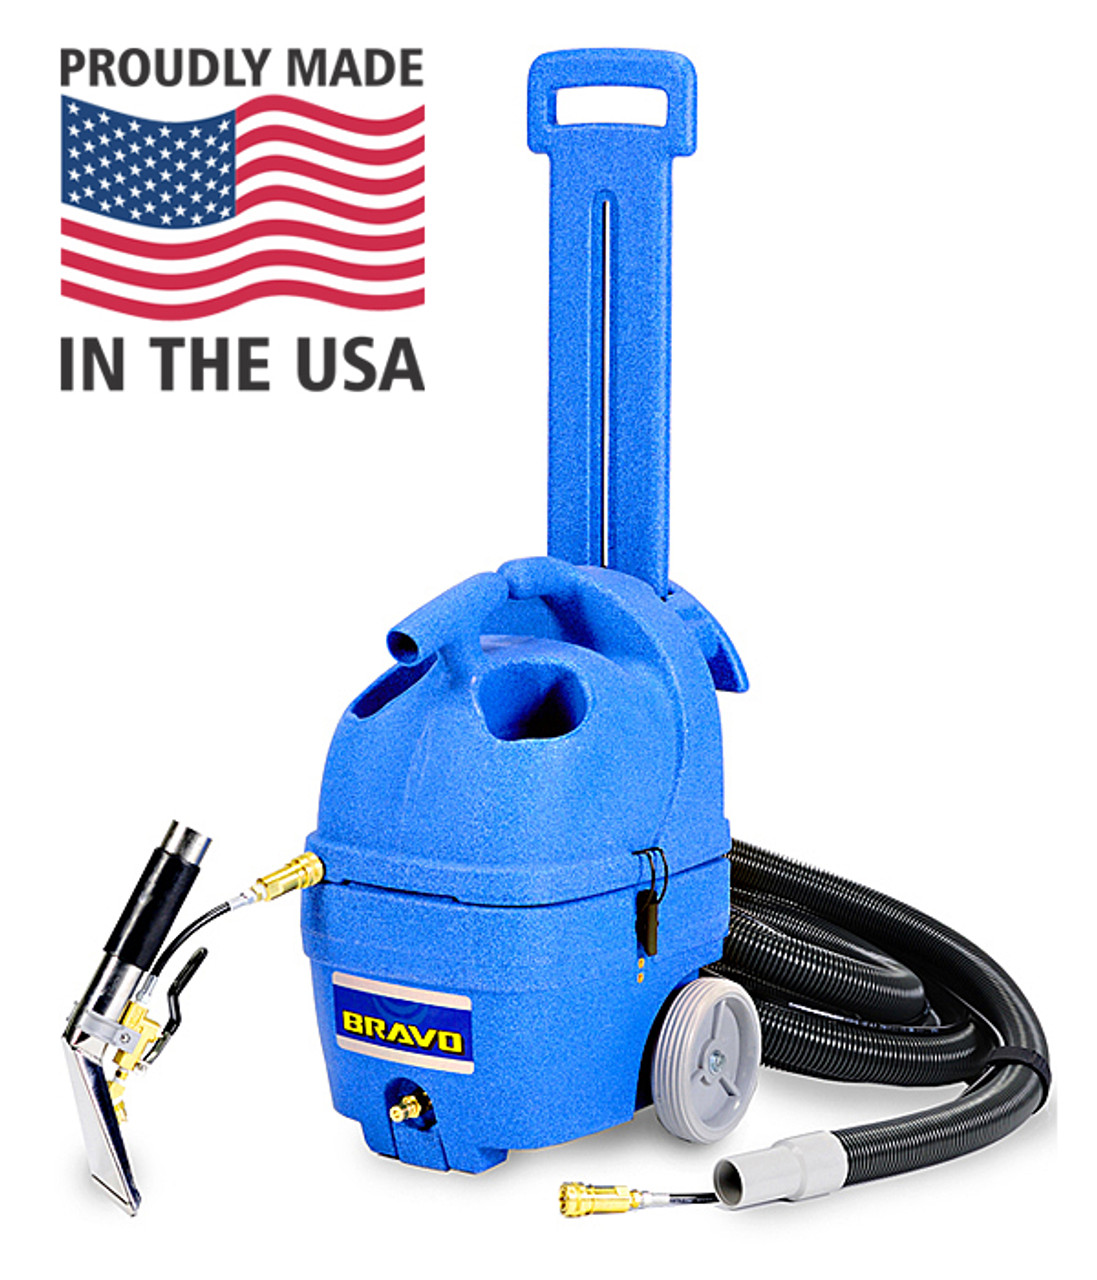 The Bravo Carpet Spotter from Dura Wax comes with 8 ft hose and Stainless Steel upholstery/stair tool.